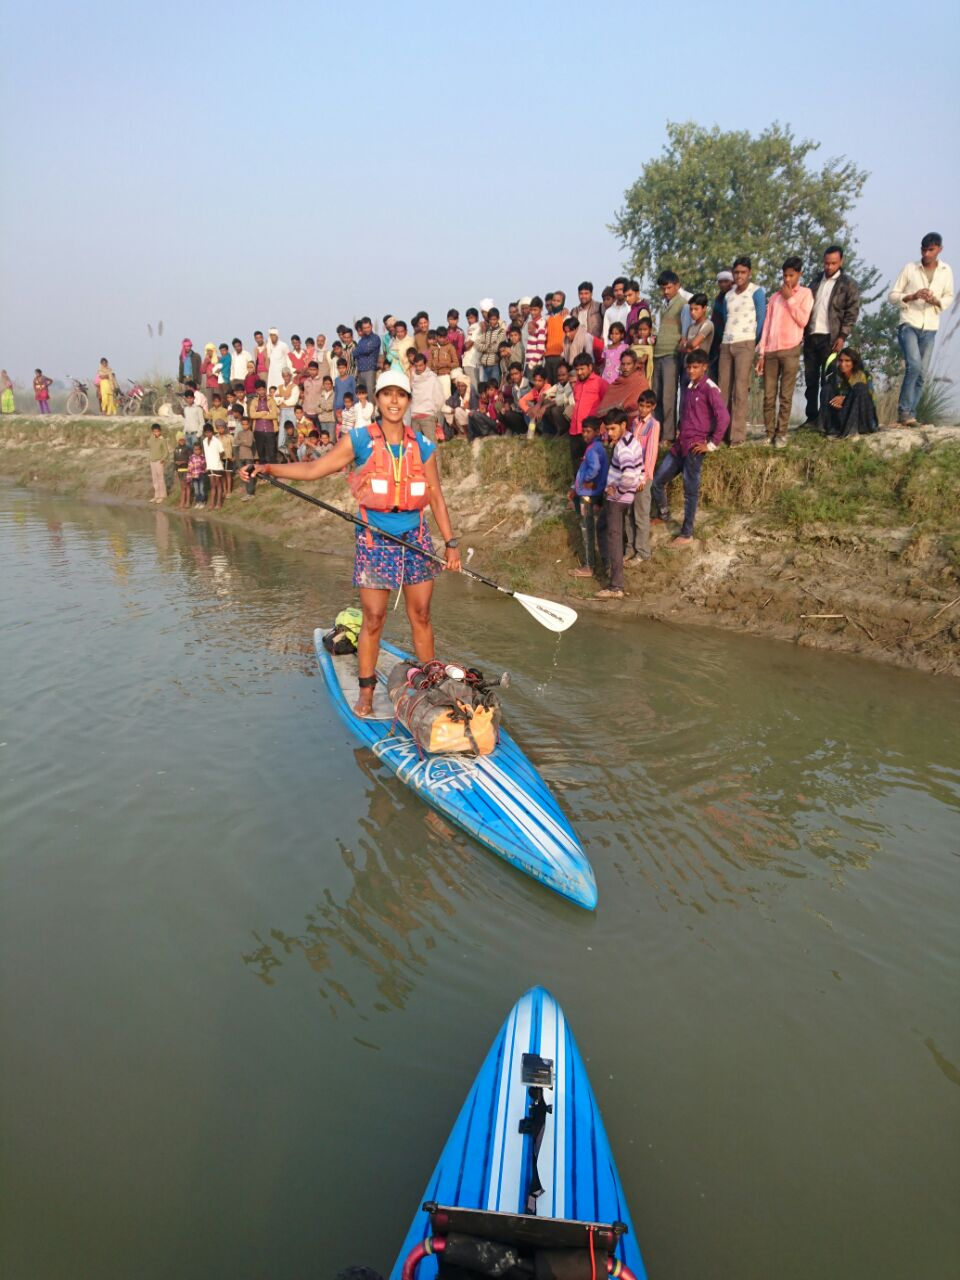 Men and boys see the team paddle off in the morning in Uttar Pradesh. Photo © Pascal Dubois